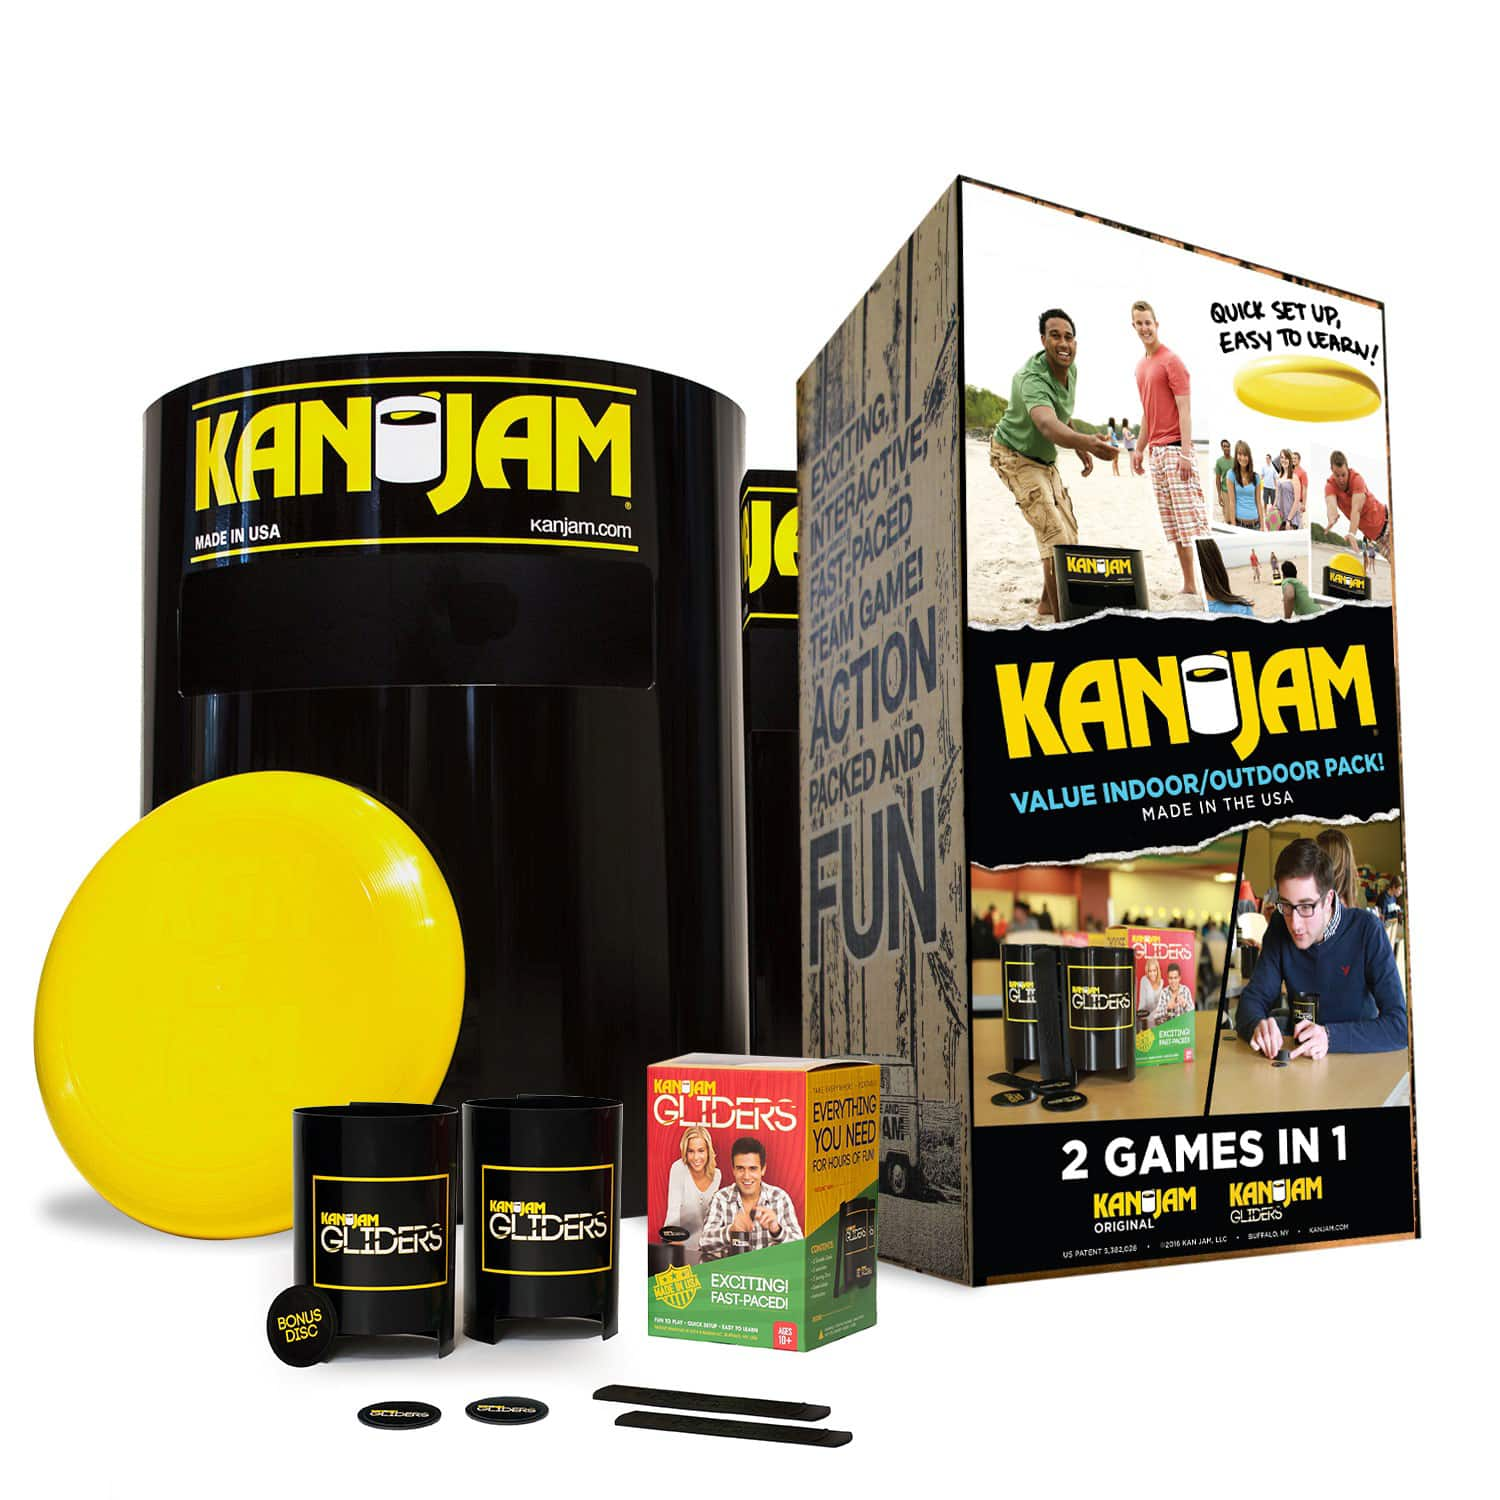 Kan Jam Value Indoor / Outdoor Pack $20 Clearance @ Walmart B&M (YMMV?)